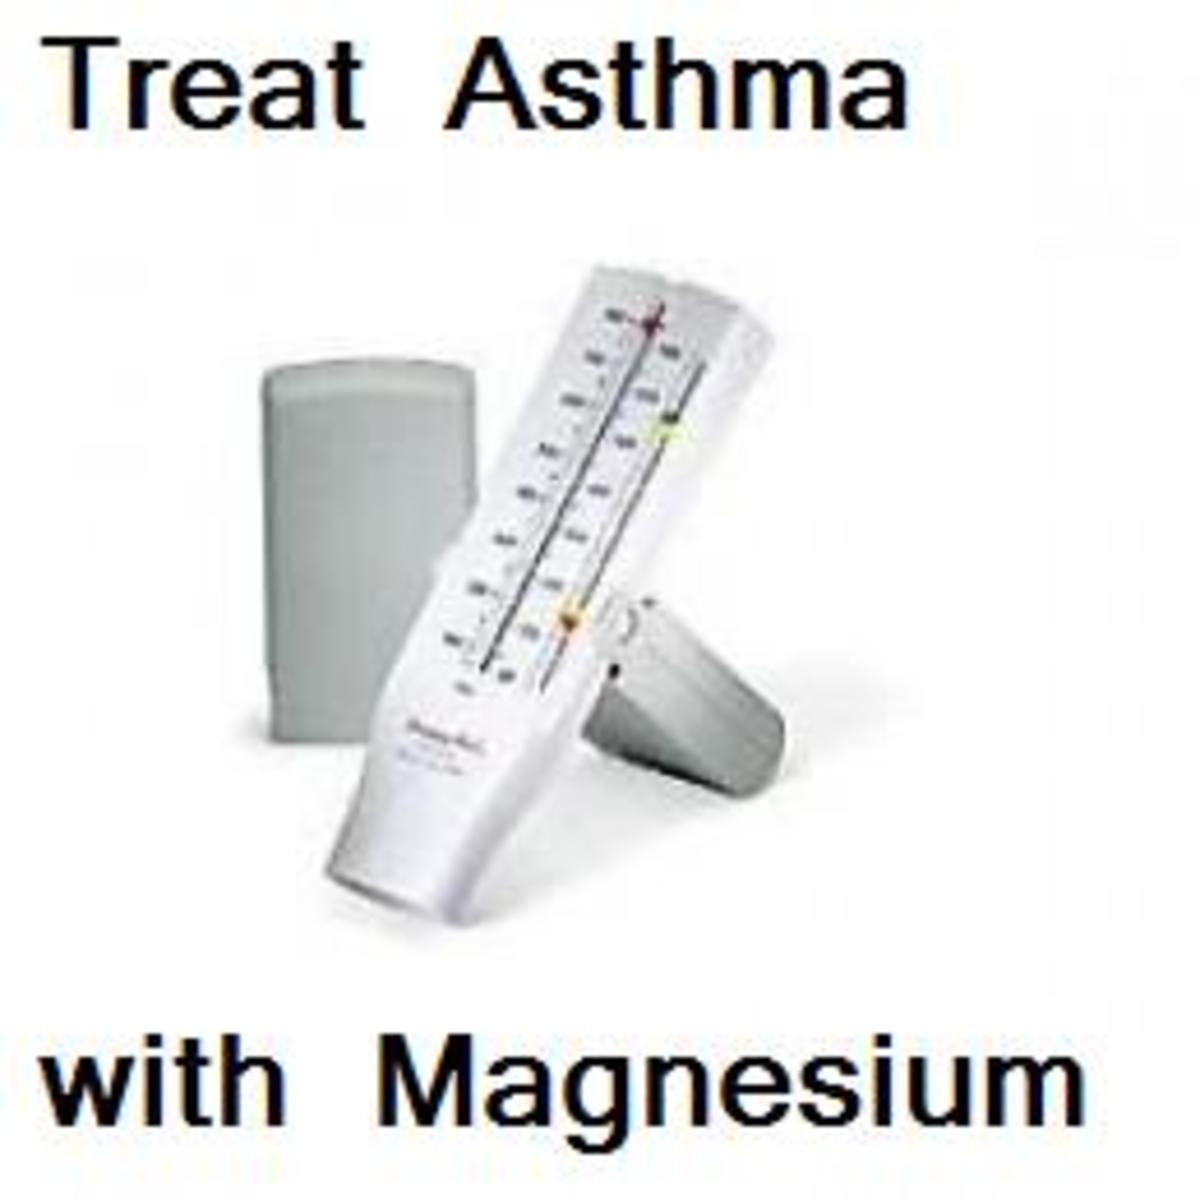 A Substitute for Primatene Mist Inhaler: Treatment for Asthma